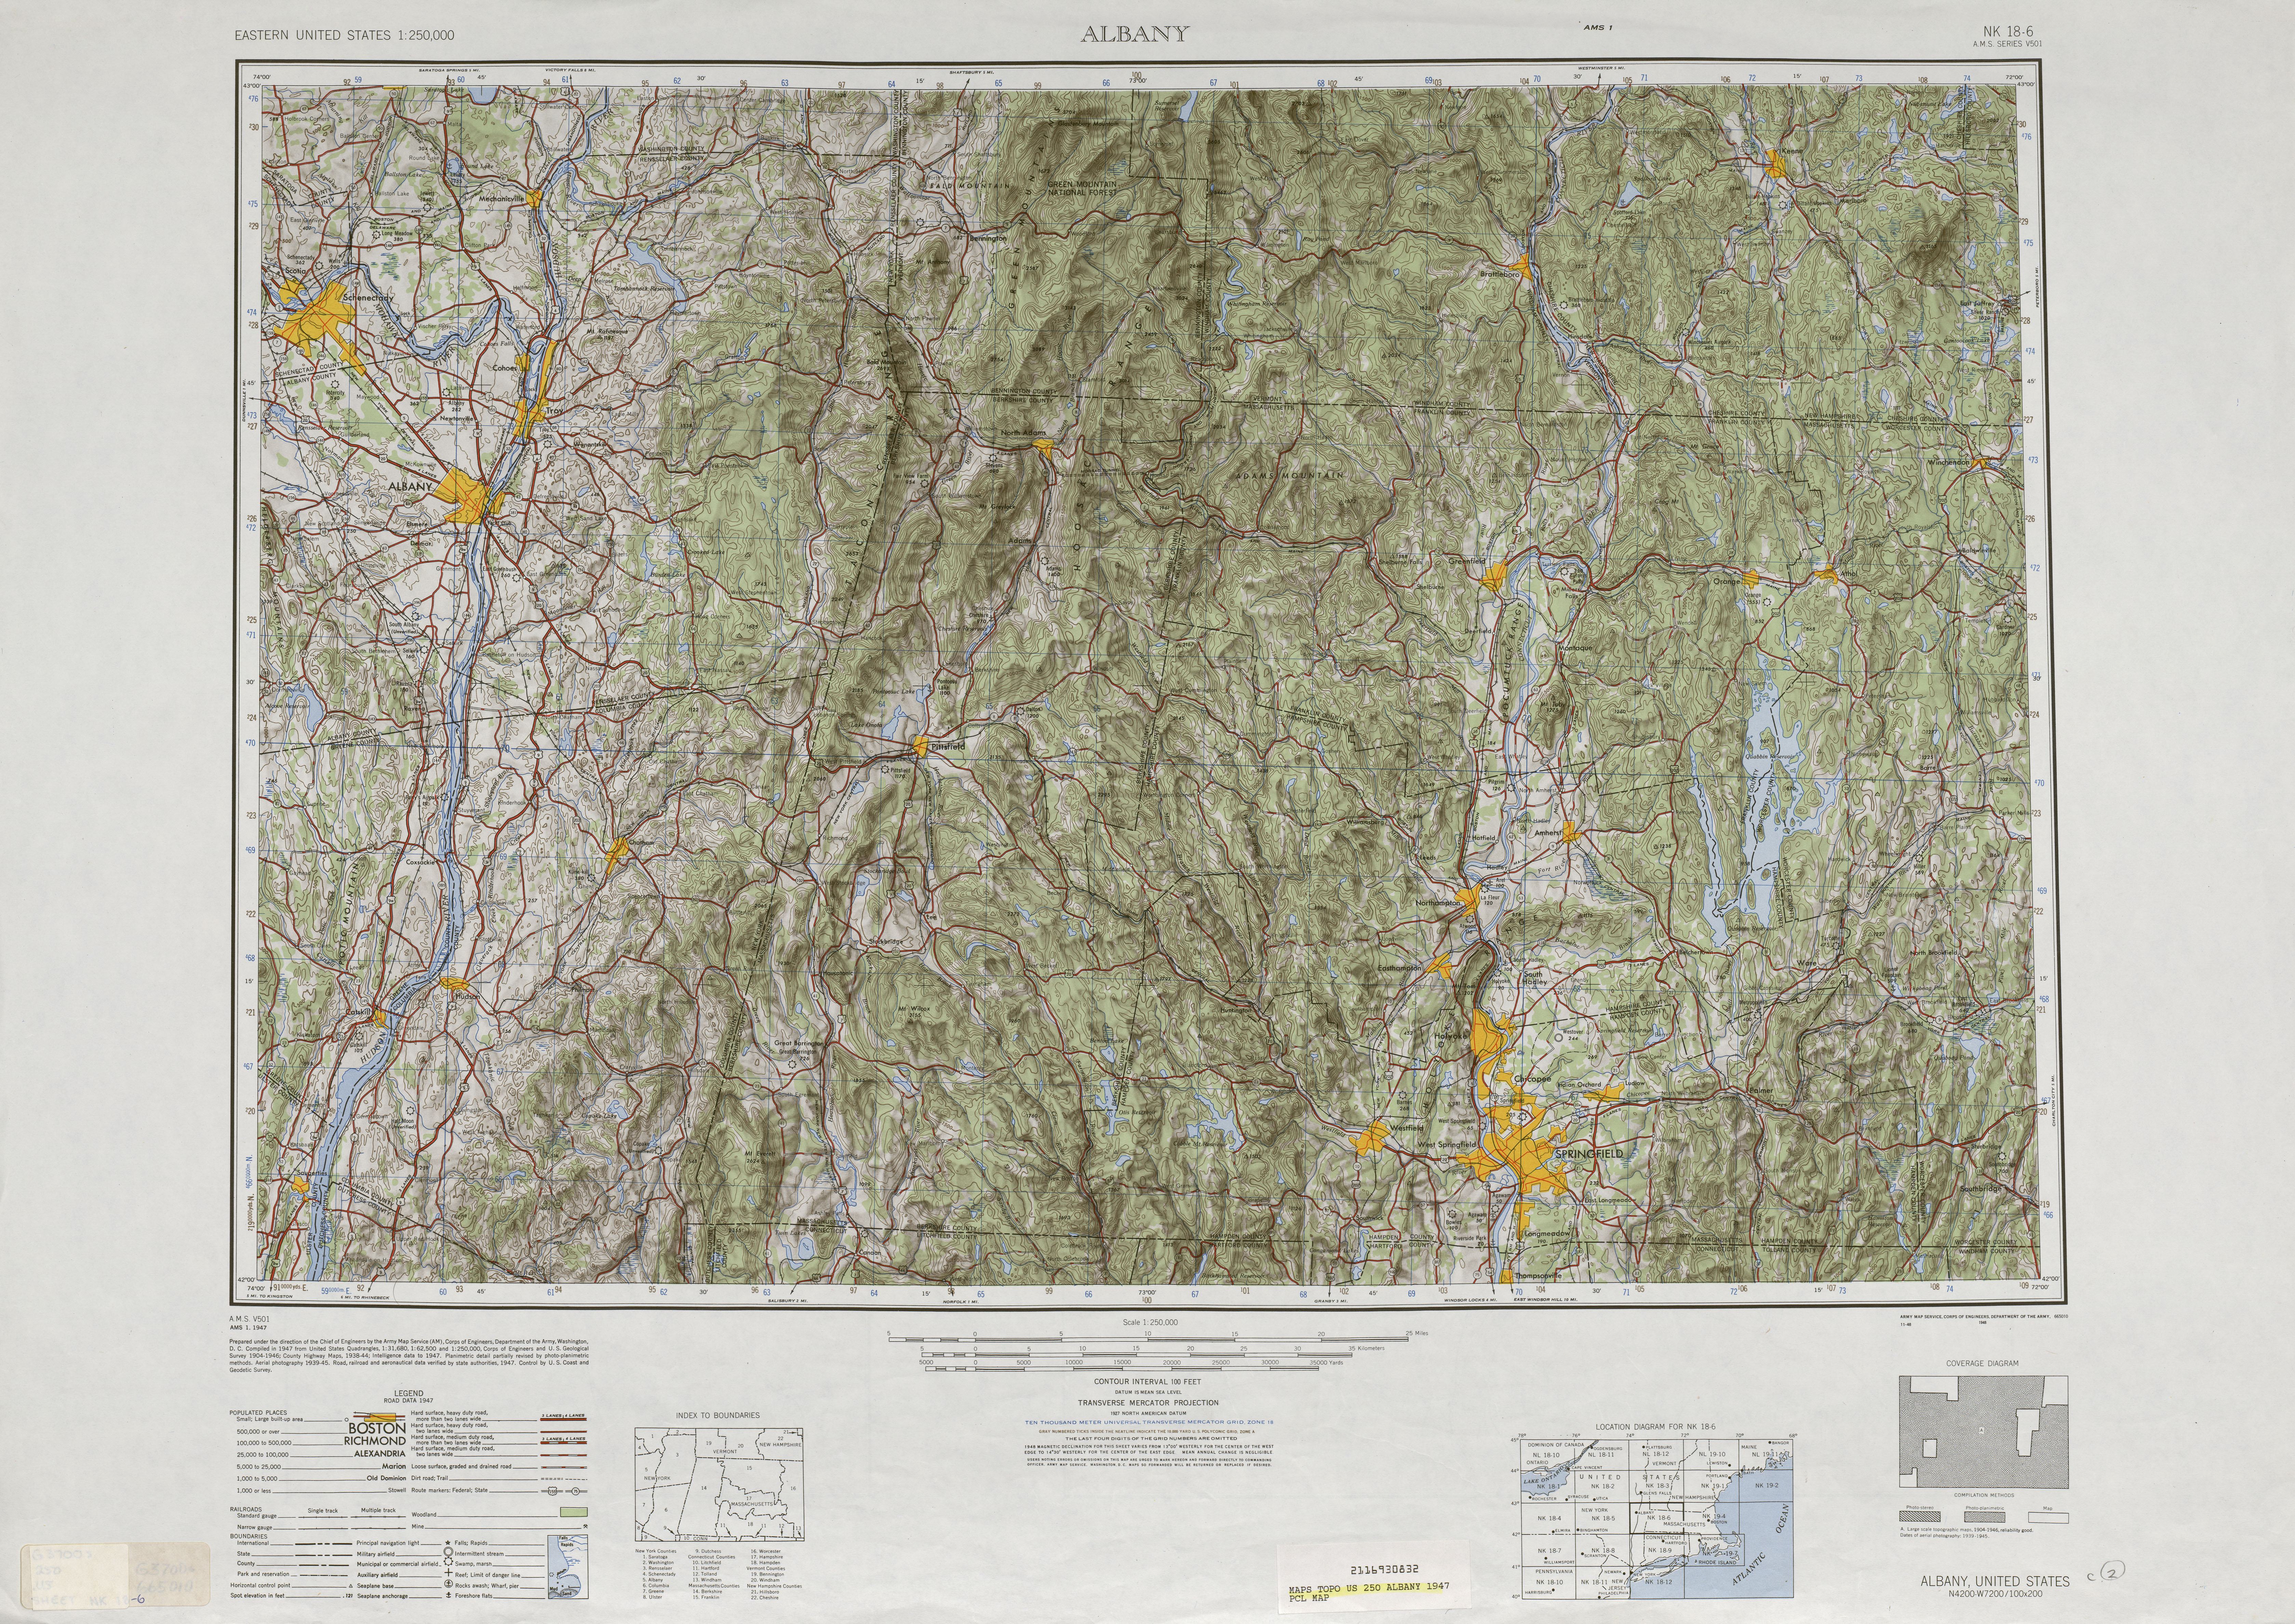 United States Map Topography.United States Topographic Maps 1 250 000 Perry Castaneda Map